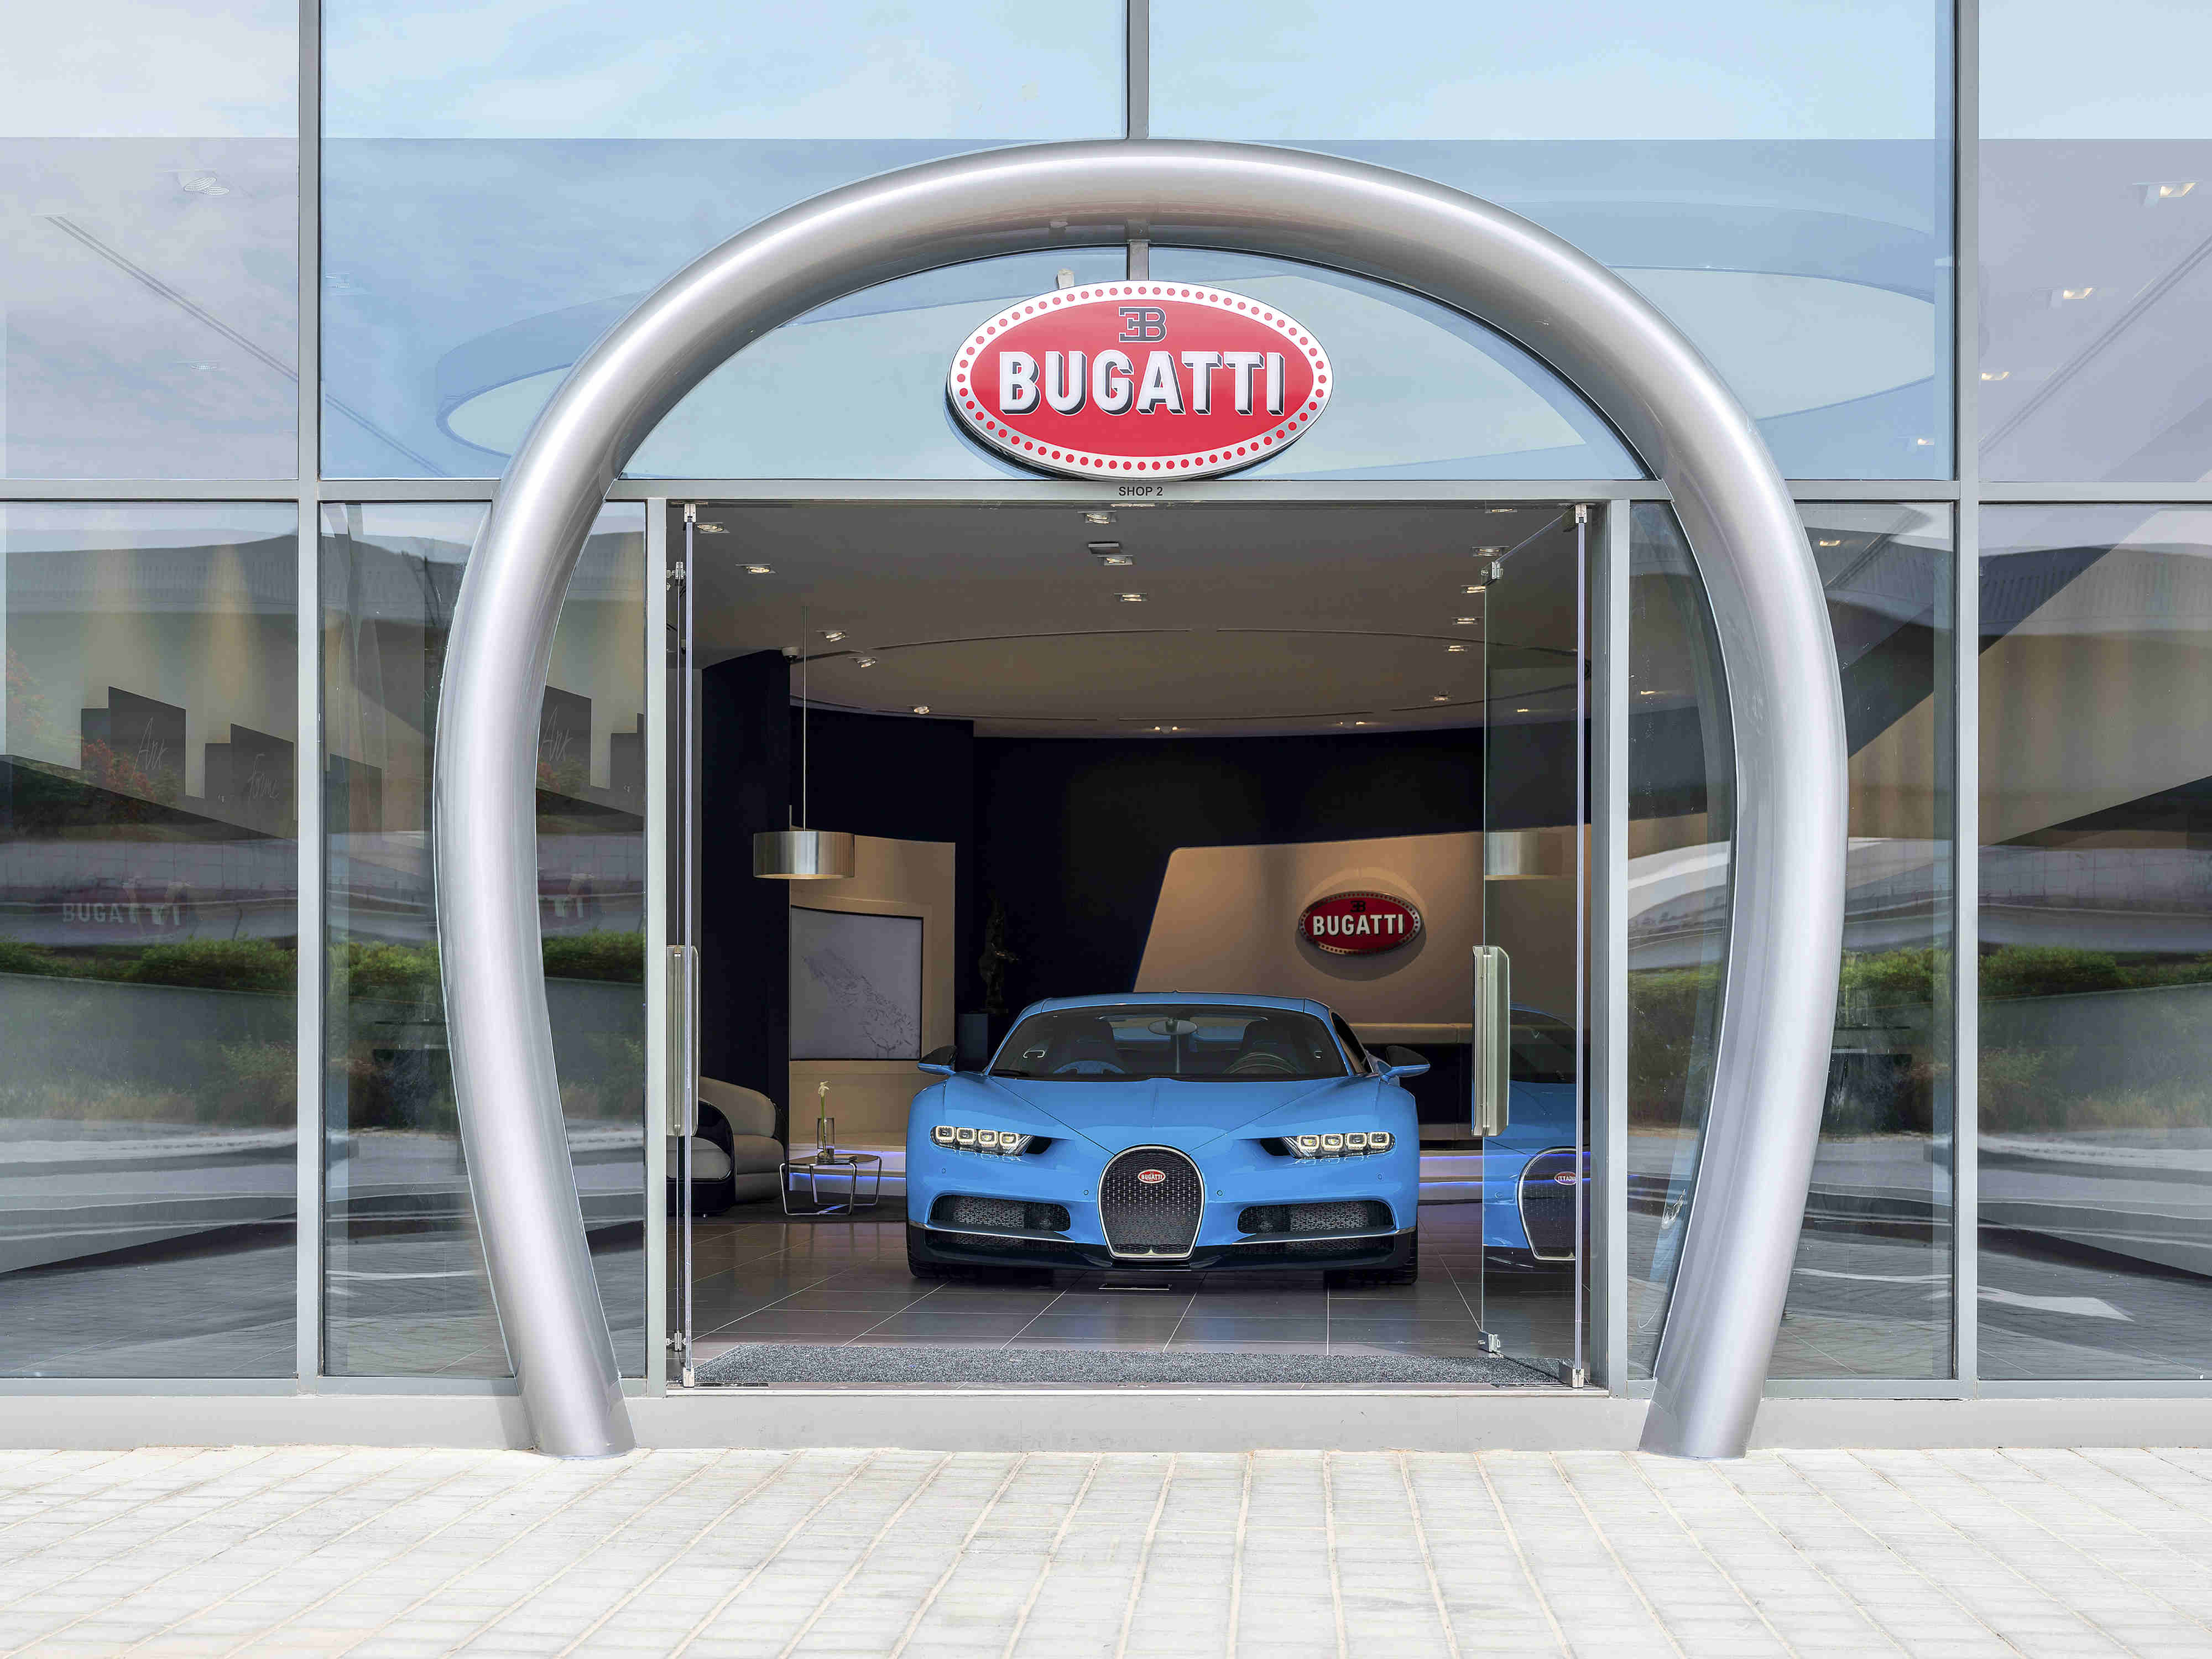 Bugatti Showroom in Dubai Happens To Be The Brand's Largest bugatti showroom in dubai Bugatti Showroom in Dubai Happens To Be The Brand's Largest Bugatti Showroom in Dubai Happens to be The worlds Largest 5